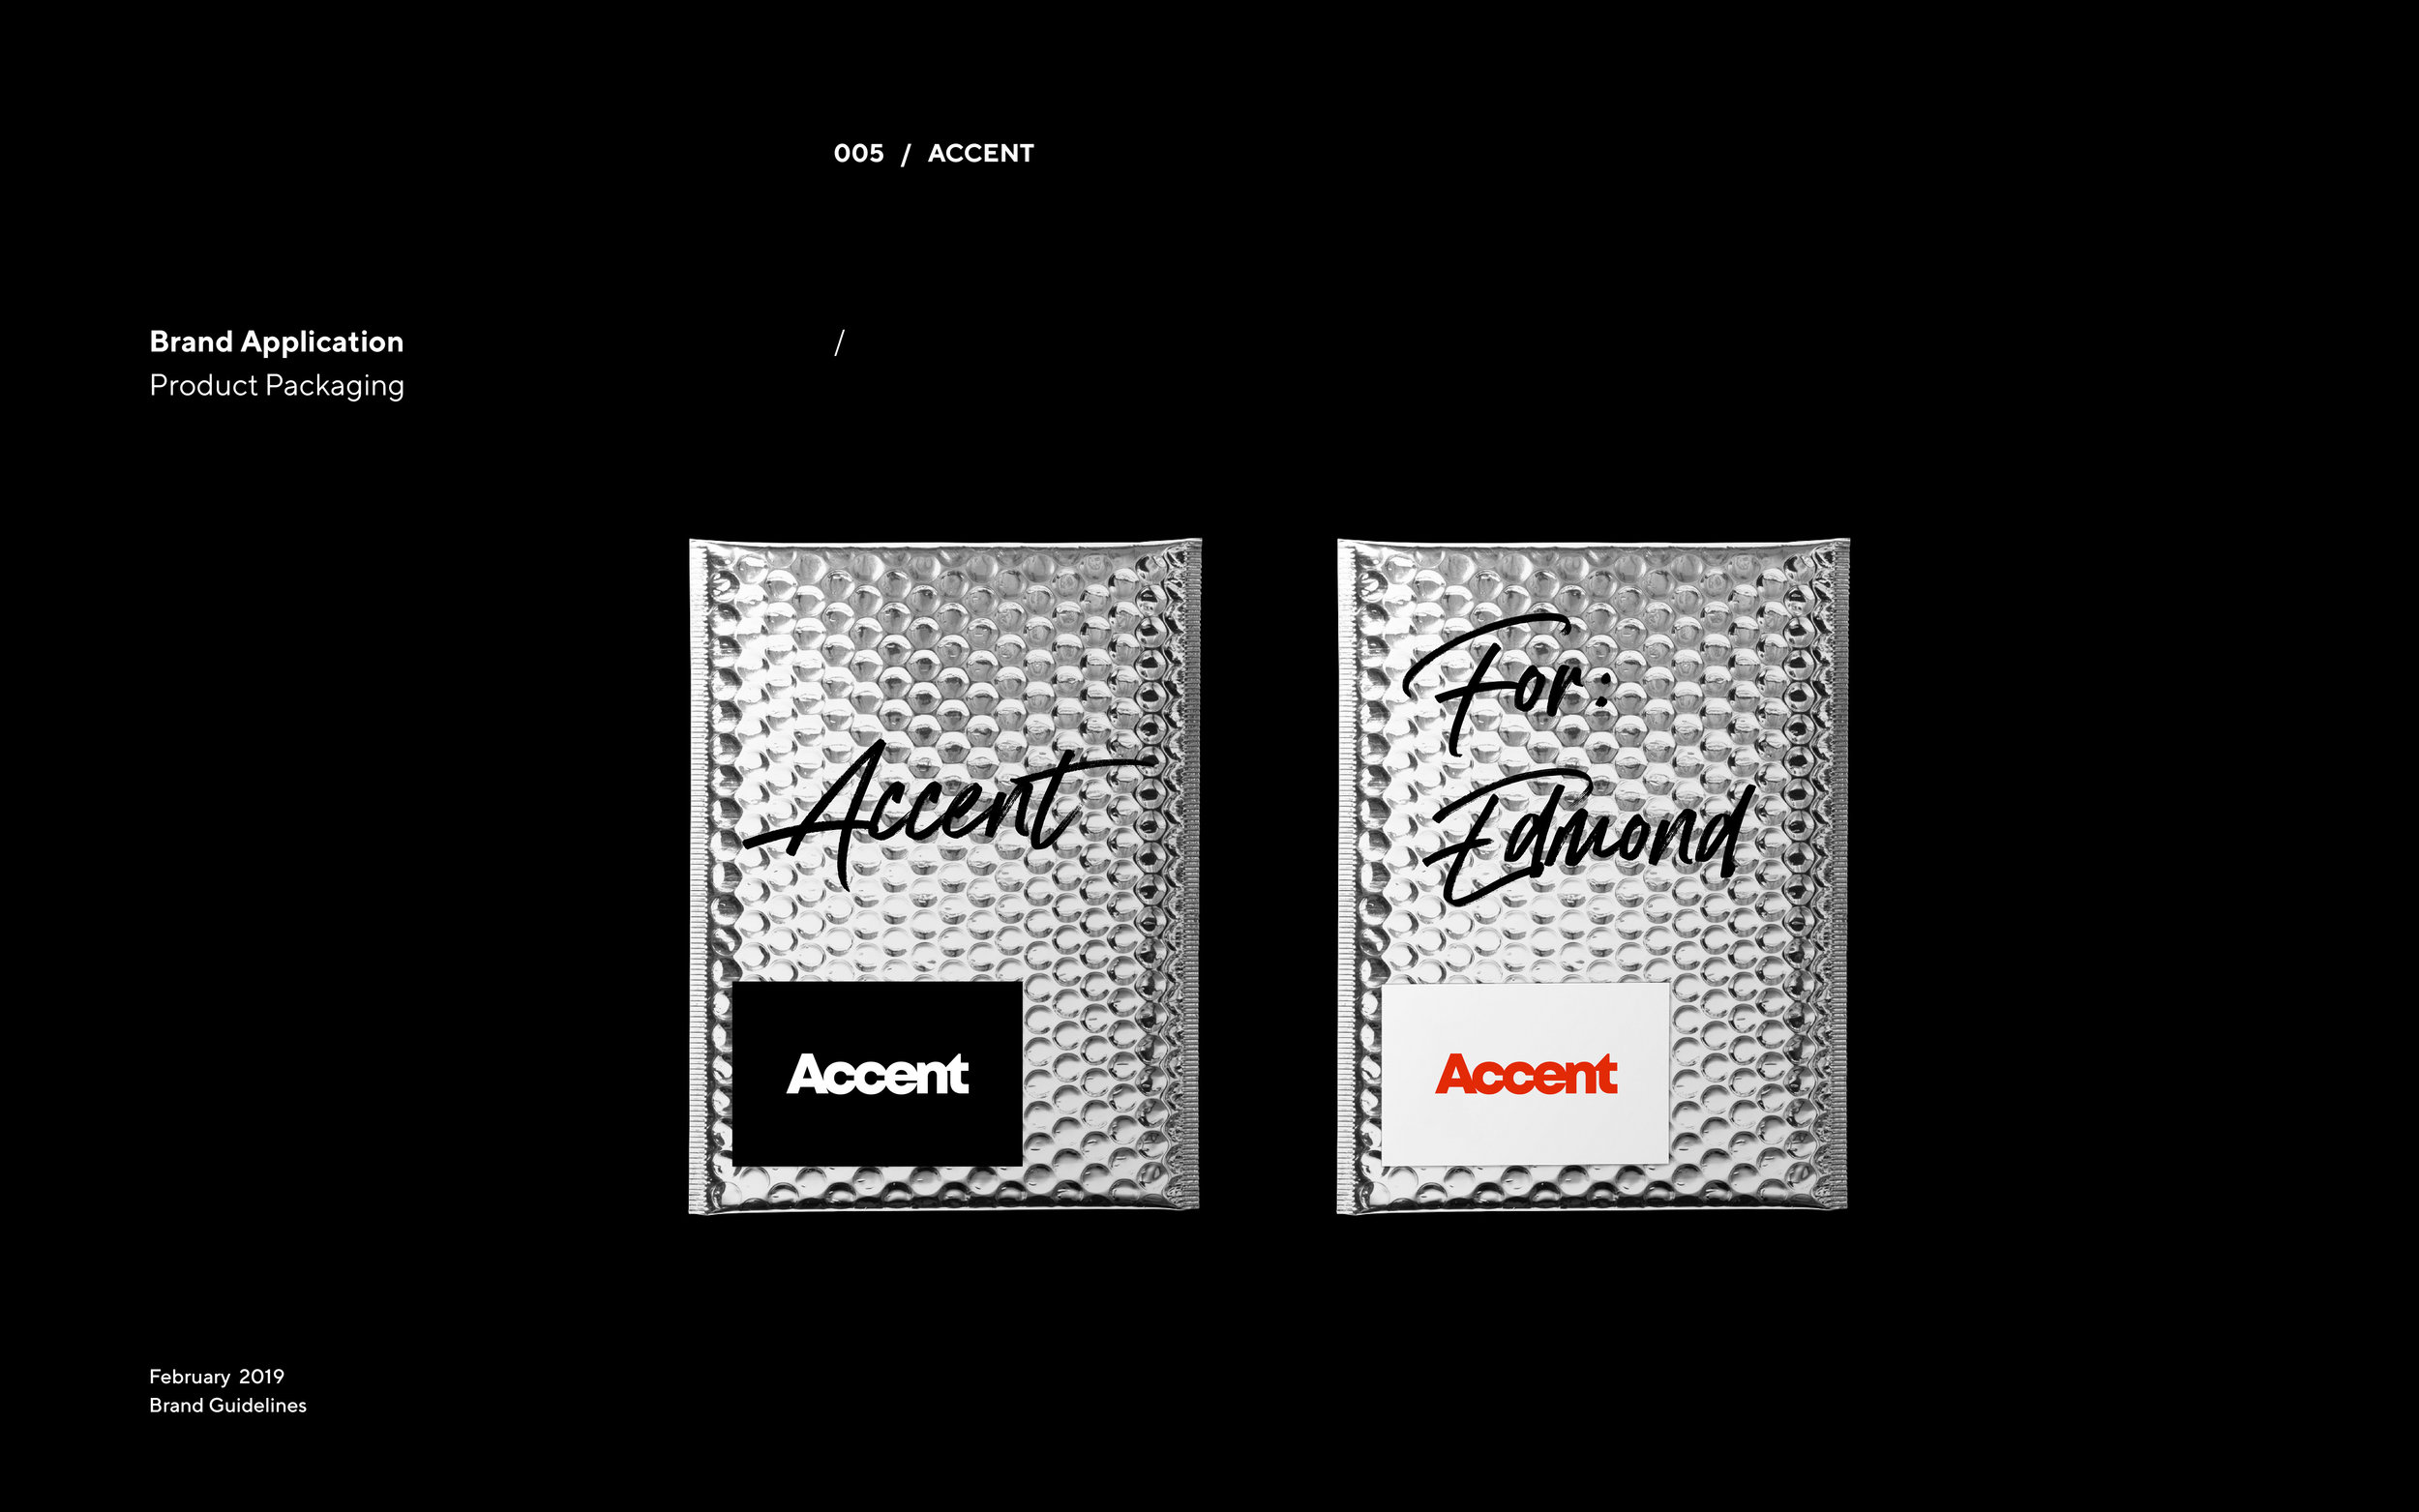 PRODUCT_PACKAGING